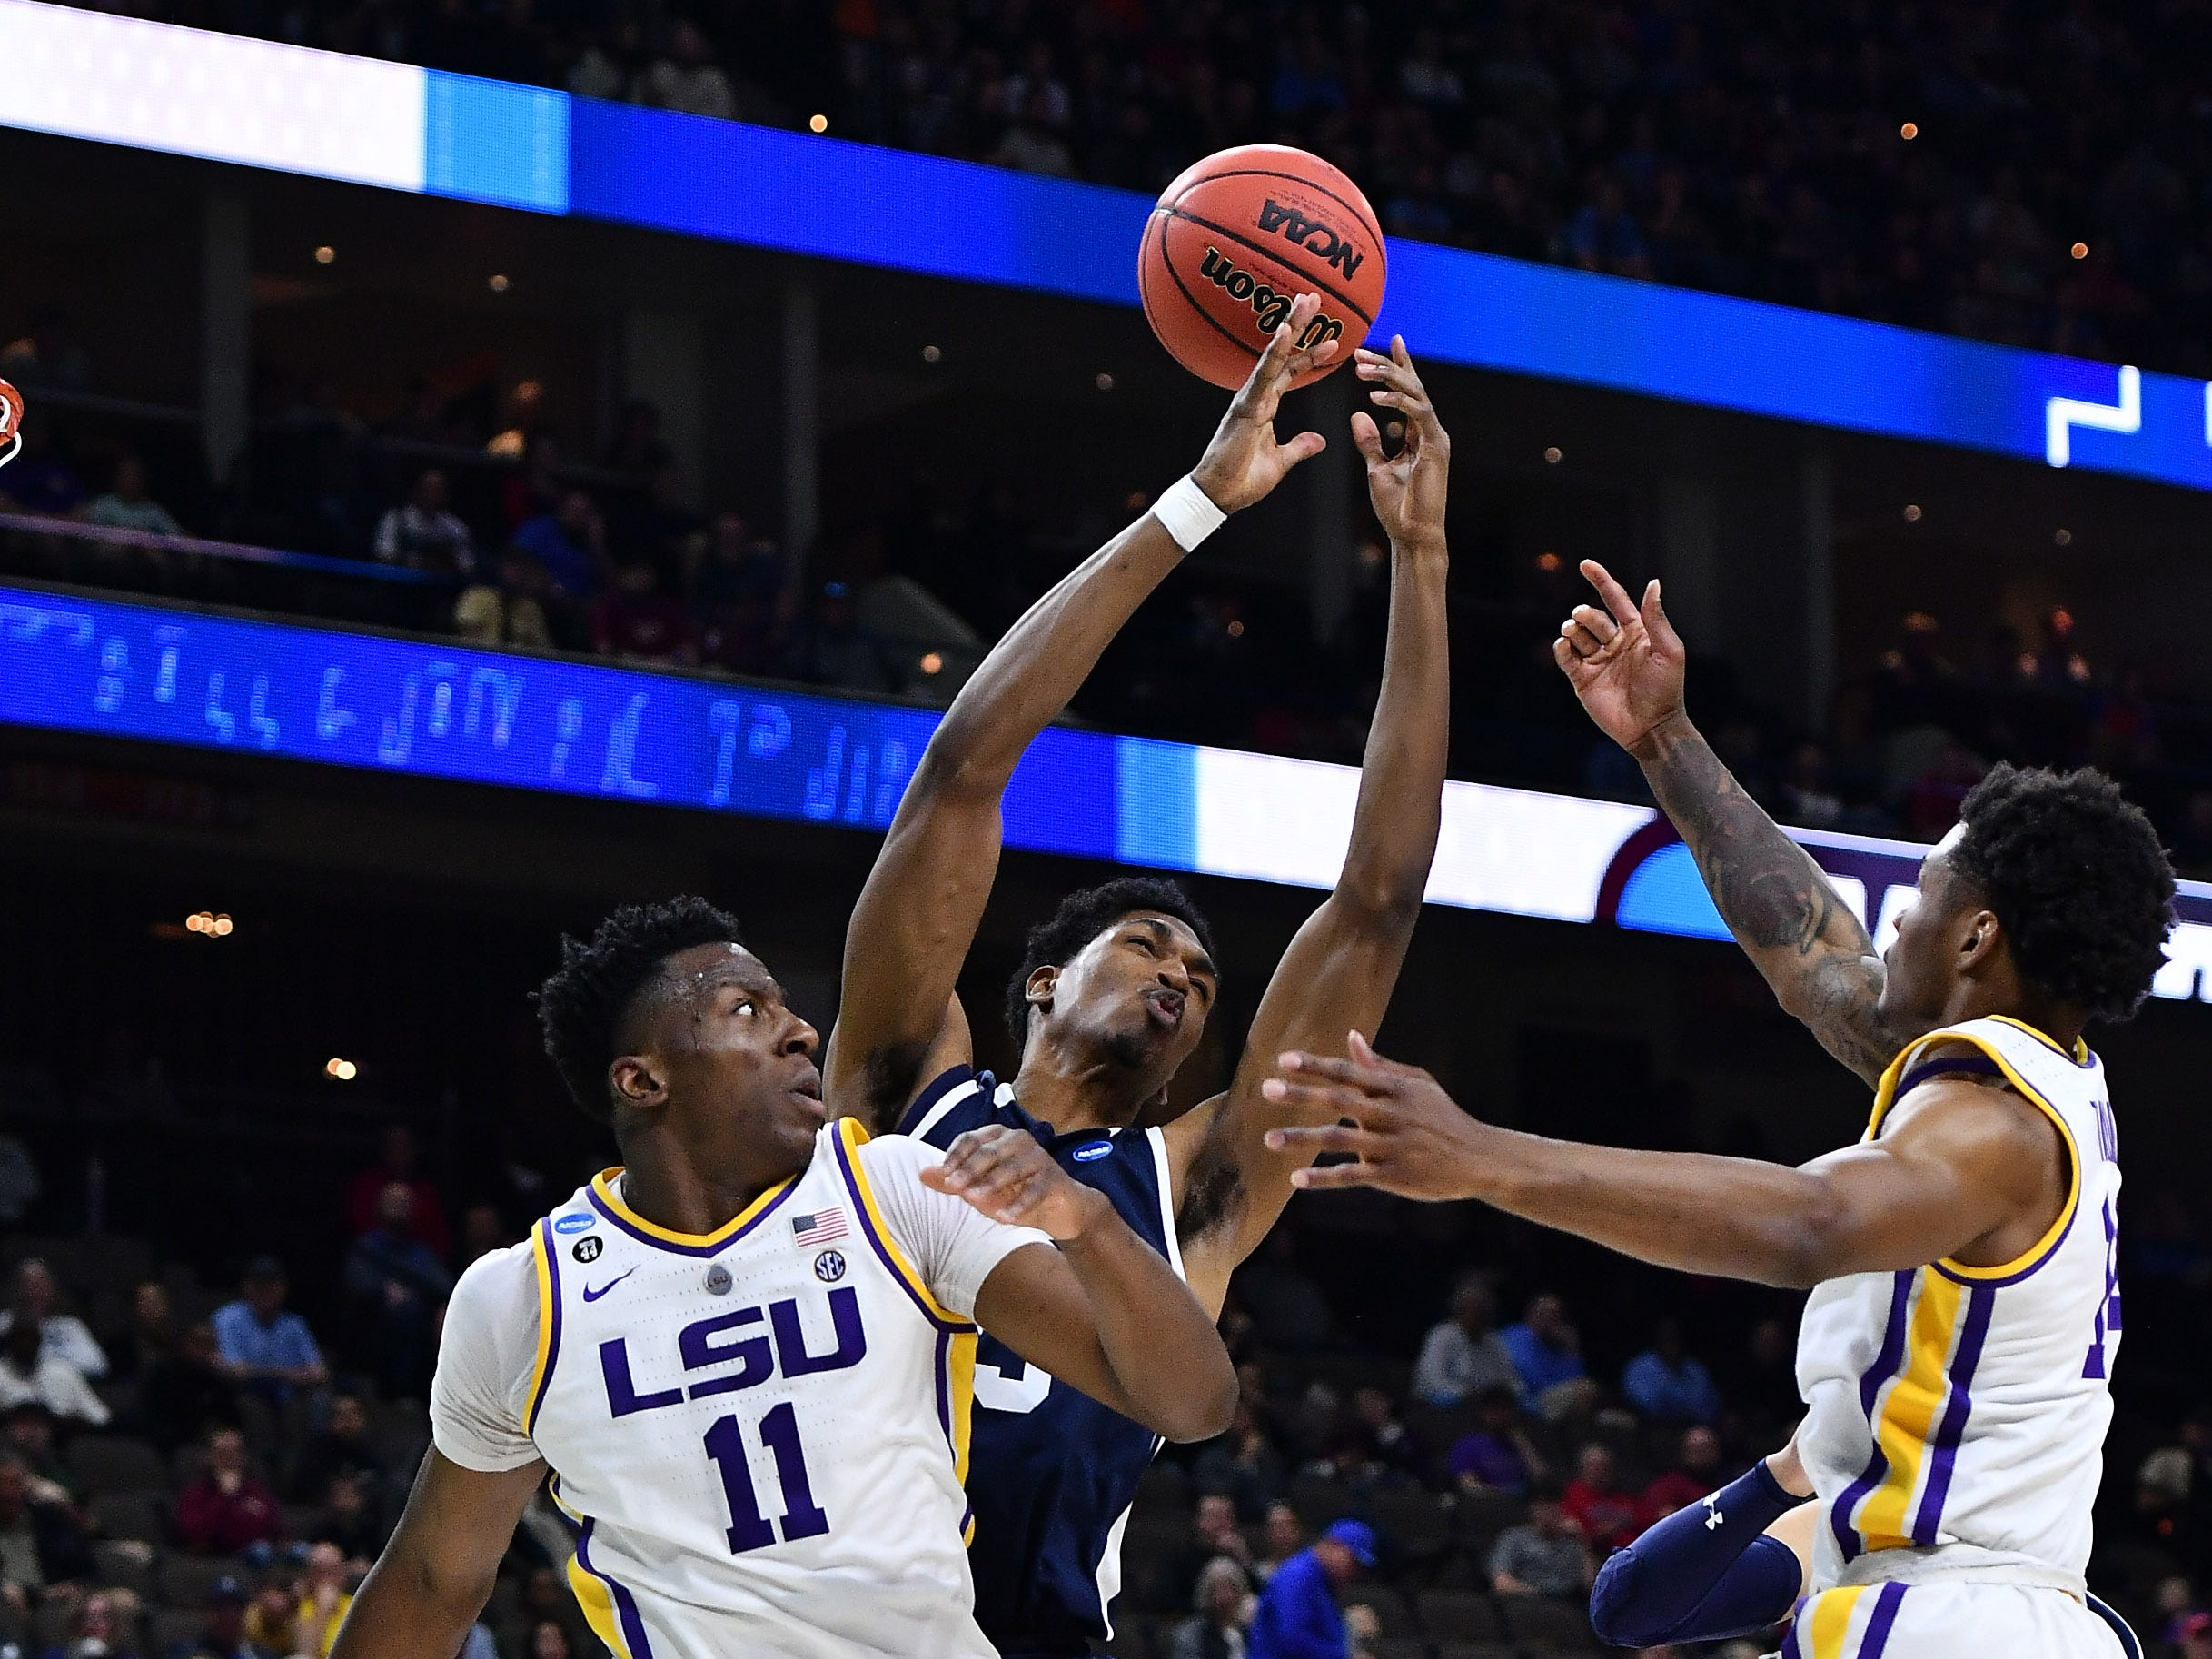 Mar 21, 2019; Jacksonville, FL, USA; Yale Bulldogs forward Jordan Bruner (middle) battles LSU Tigers forward Kavell Bigby-Williams (11) and guard Marlon Taylor (right) during the first half in the first round of the 2019 NCAA Tournament at Jacksonville Veterans Memorial Arena. Mandatory Credit: John David Mercer-USA TODAY Sports